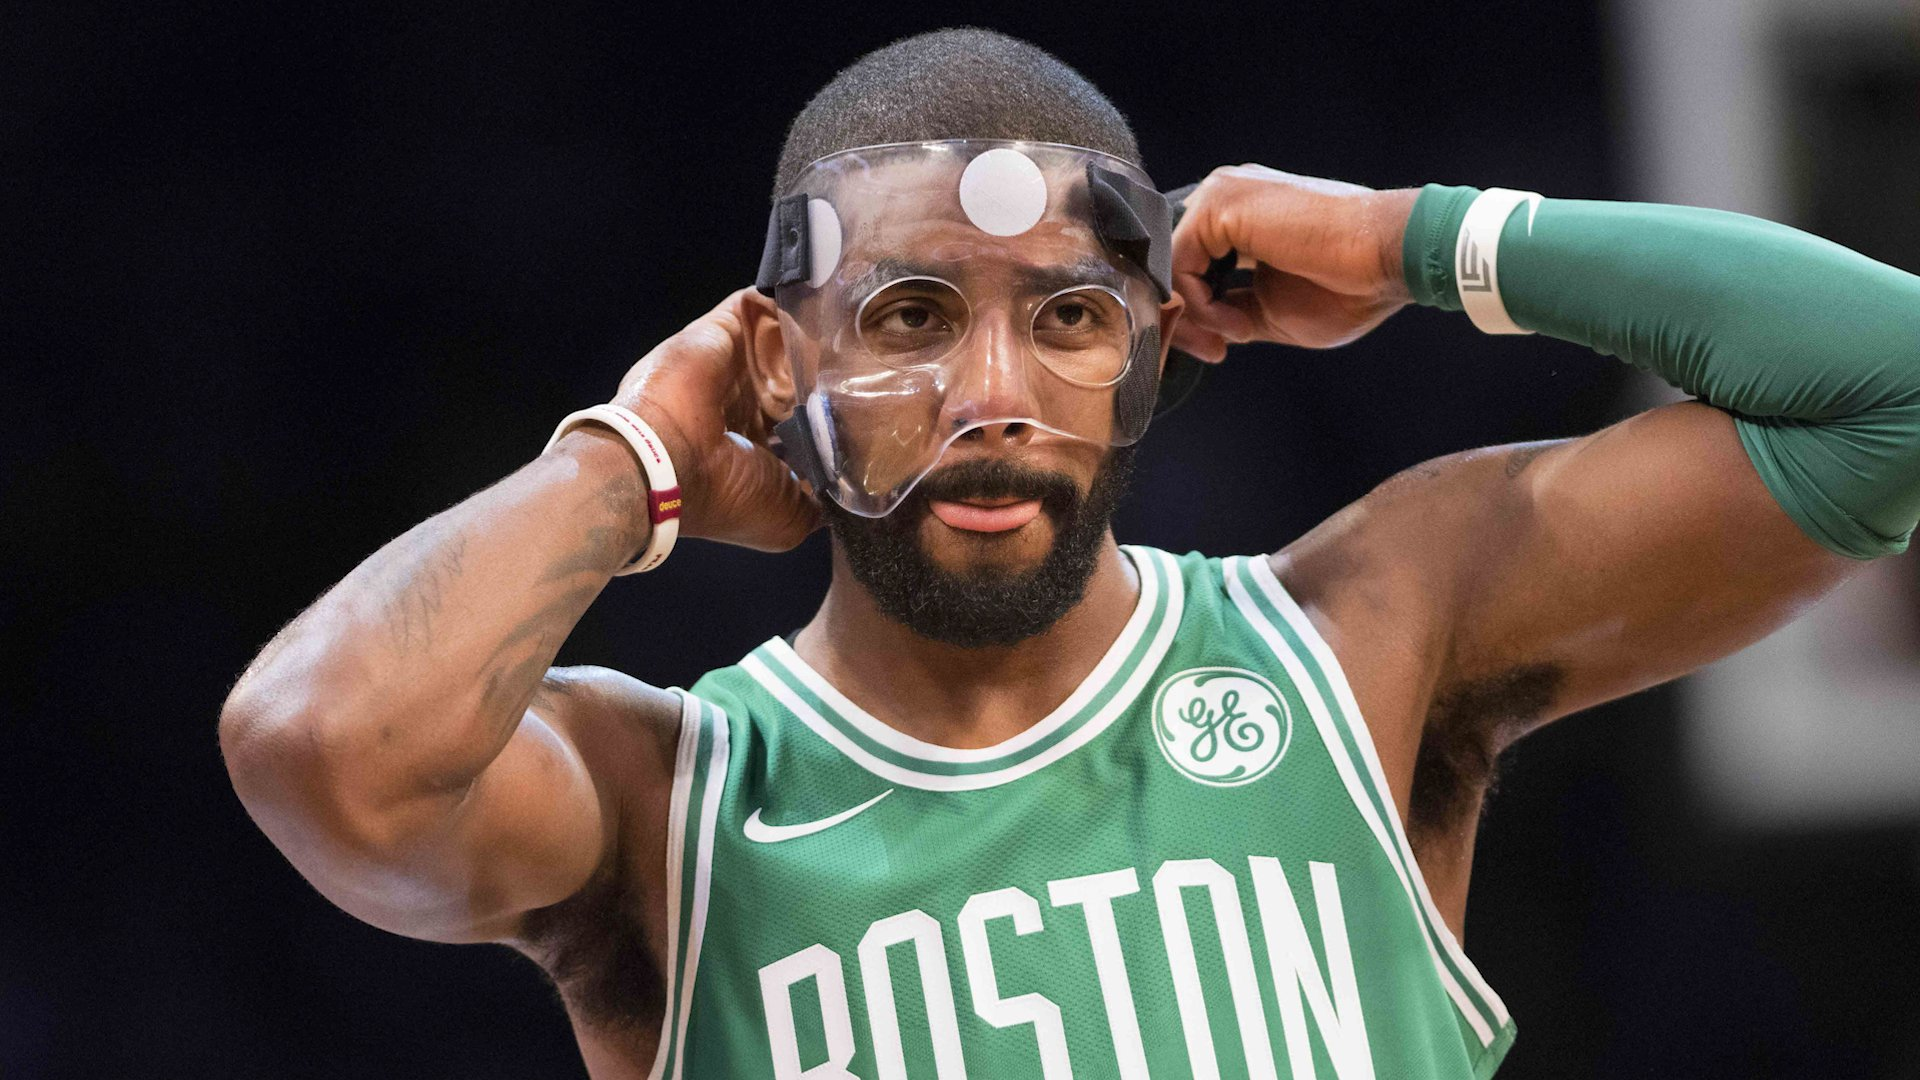 Will The Masked Hero On The Celtics Ever Reveal His Secret Identity? https://t.co/0TJ0Zvx4hh